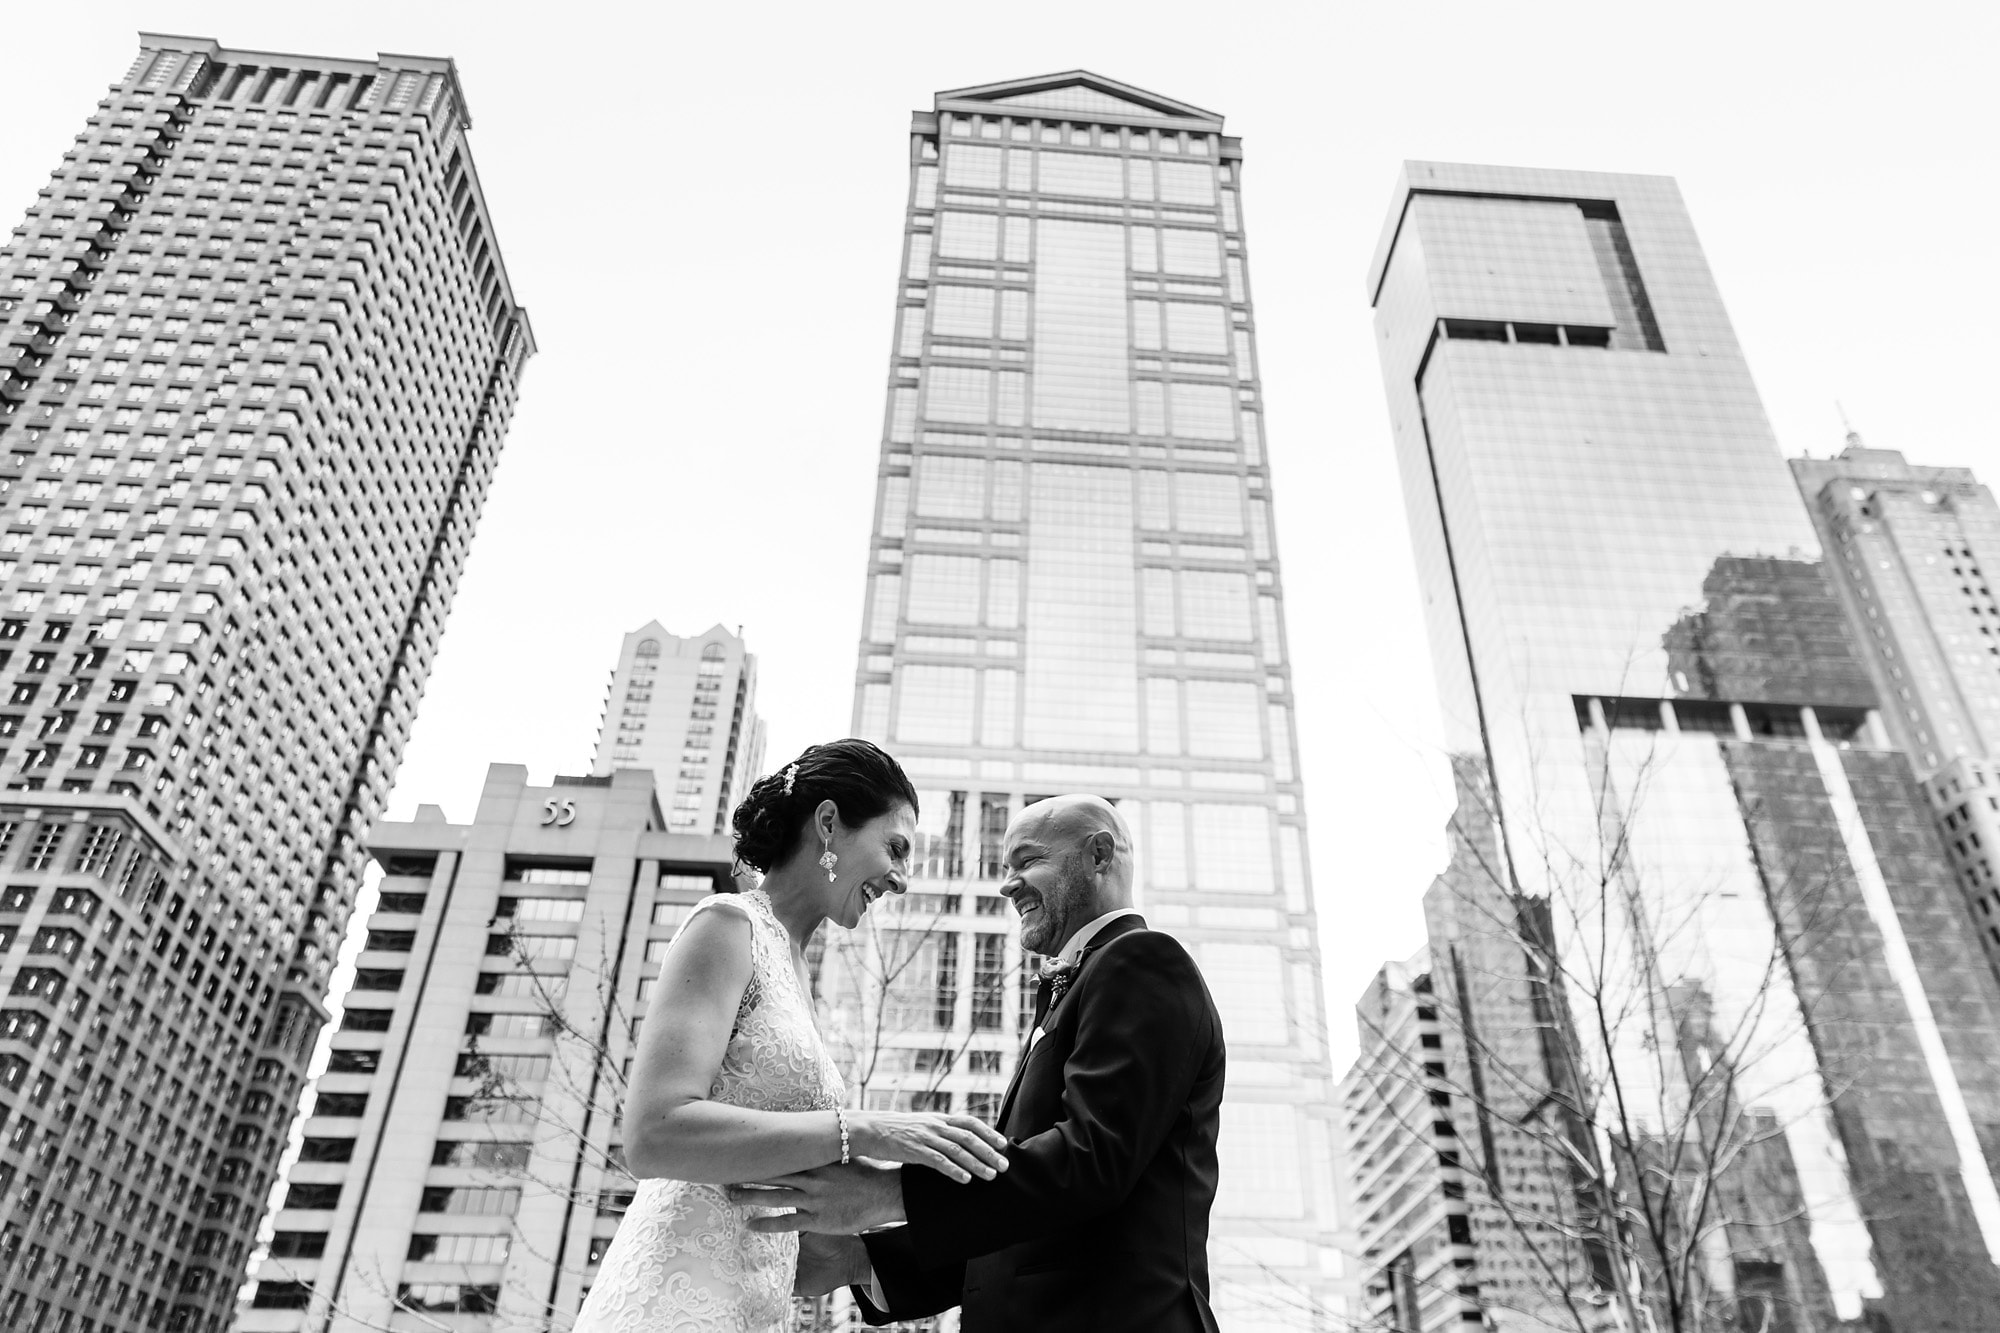 Christina and Brad see each other for the first time on their wedding day outside the Westin Chicago River North